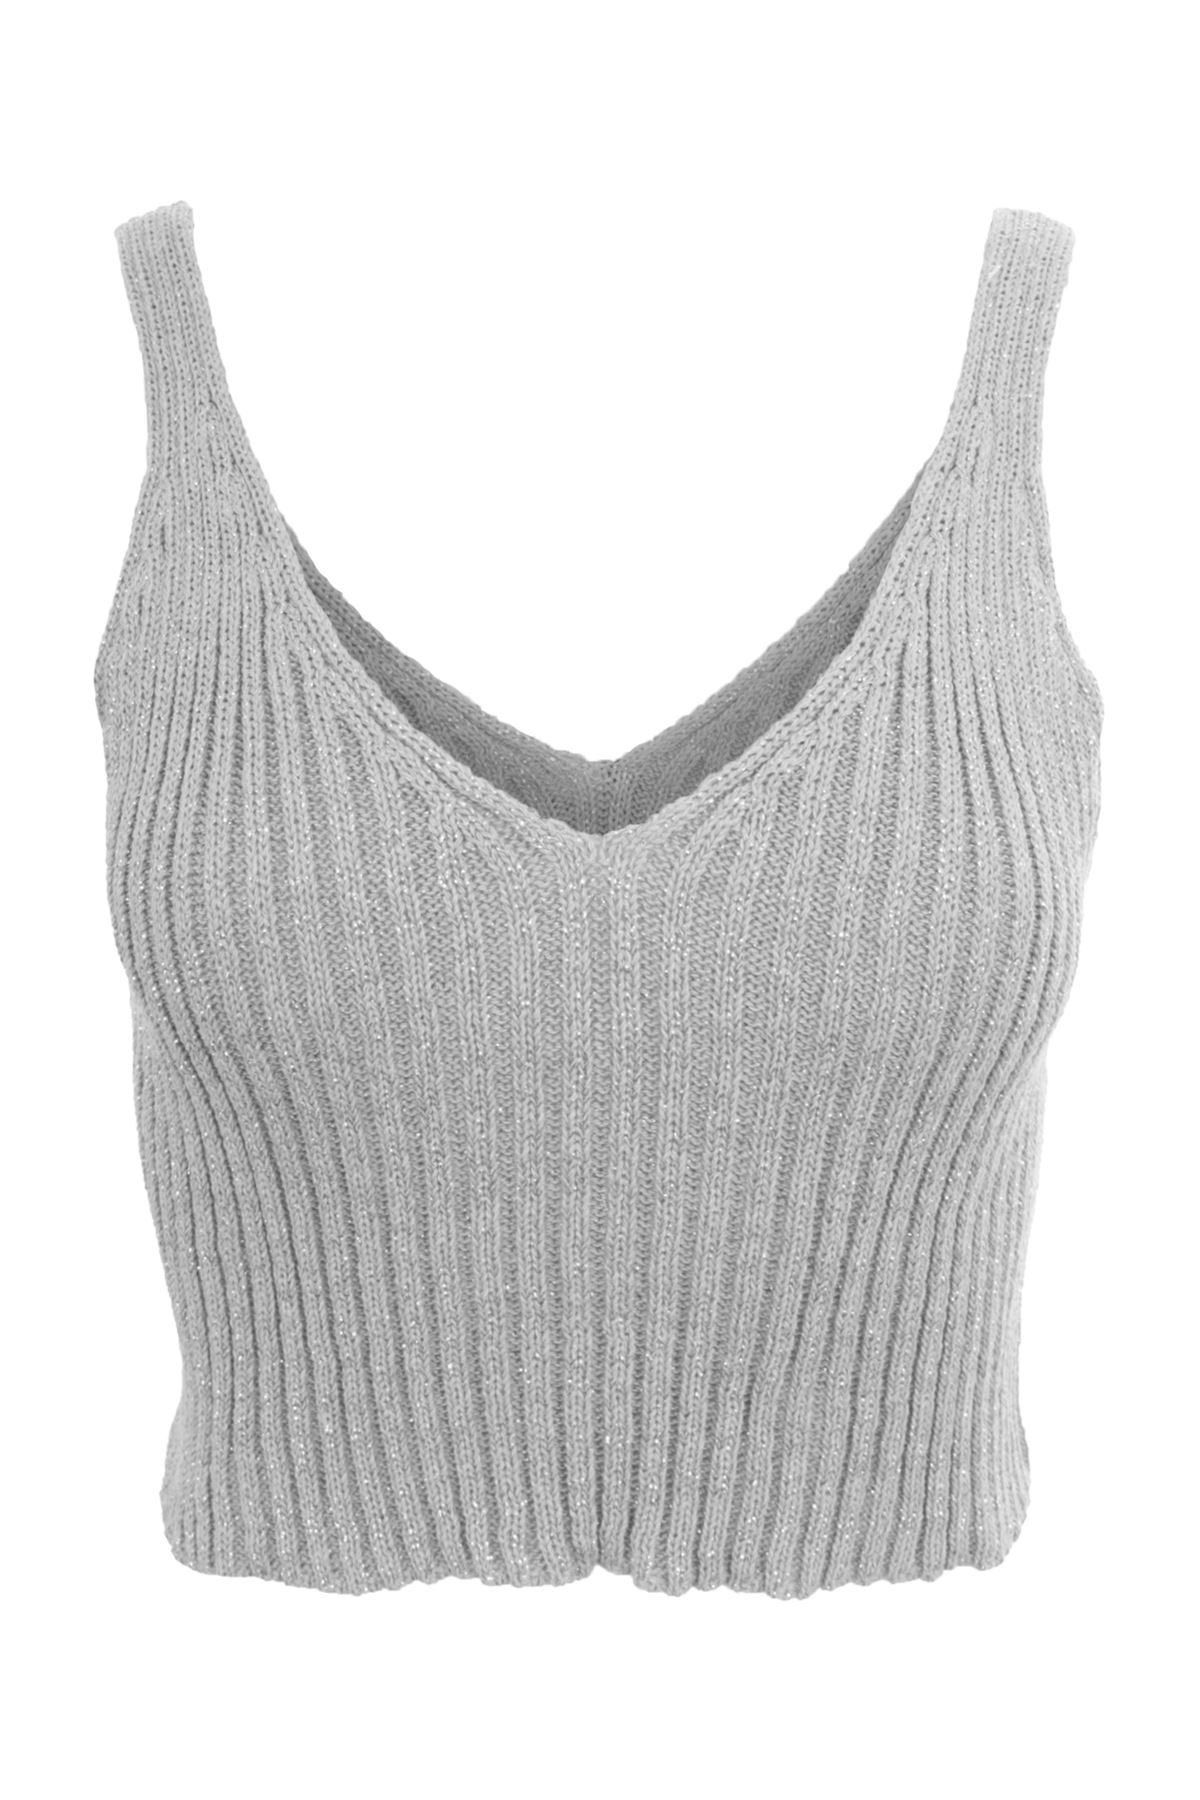 5958387c1143c Ladies Plunge V Neck Low Back Knitted Glitter Stretch Strappy Bralet Crop  Top